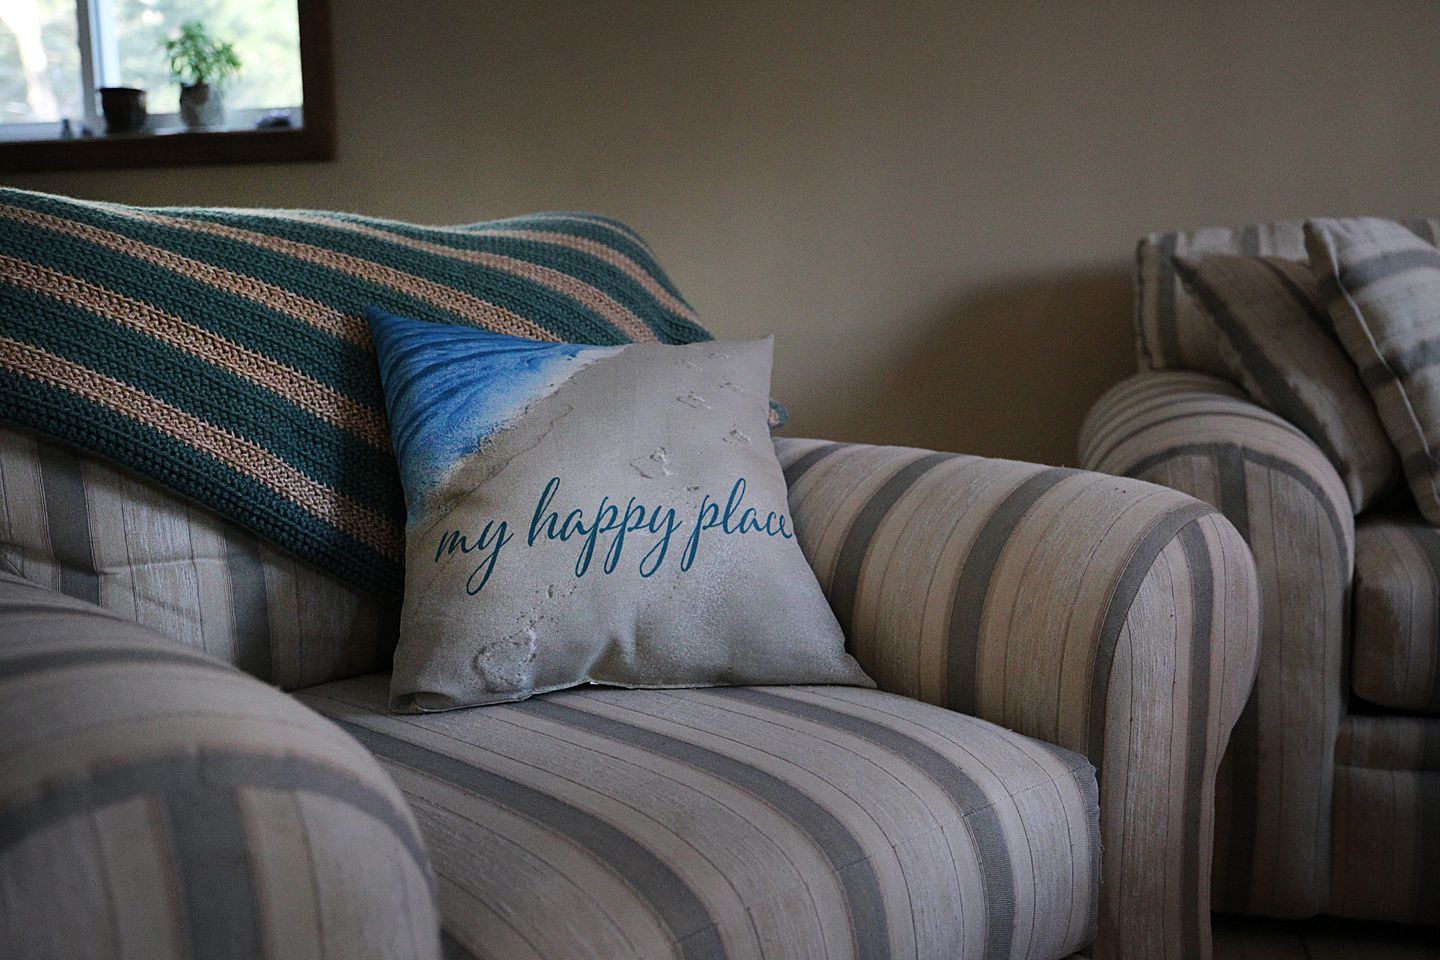 A pillow in DeFazio's home described what she has vowed to create for herself.